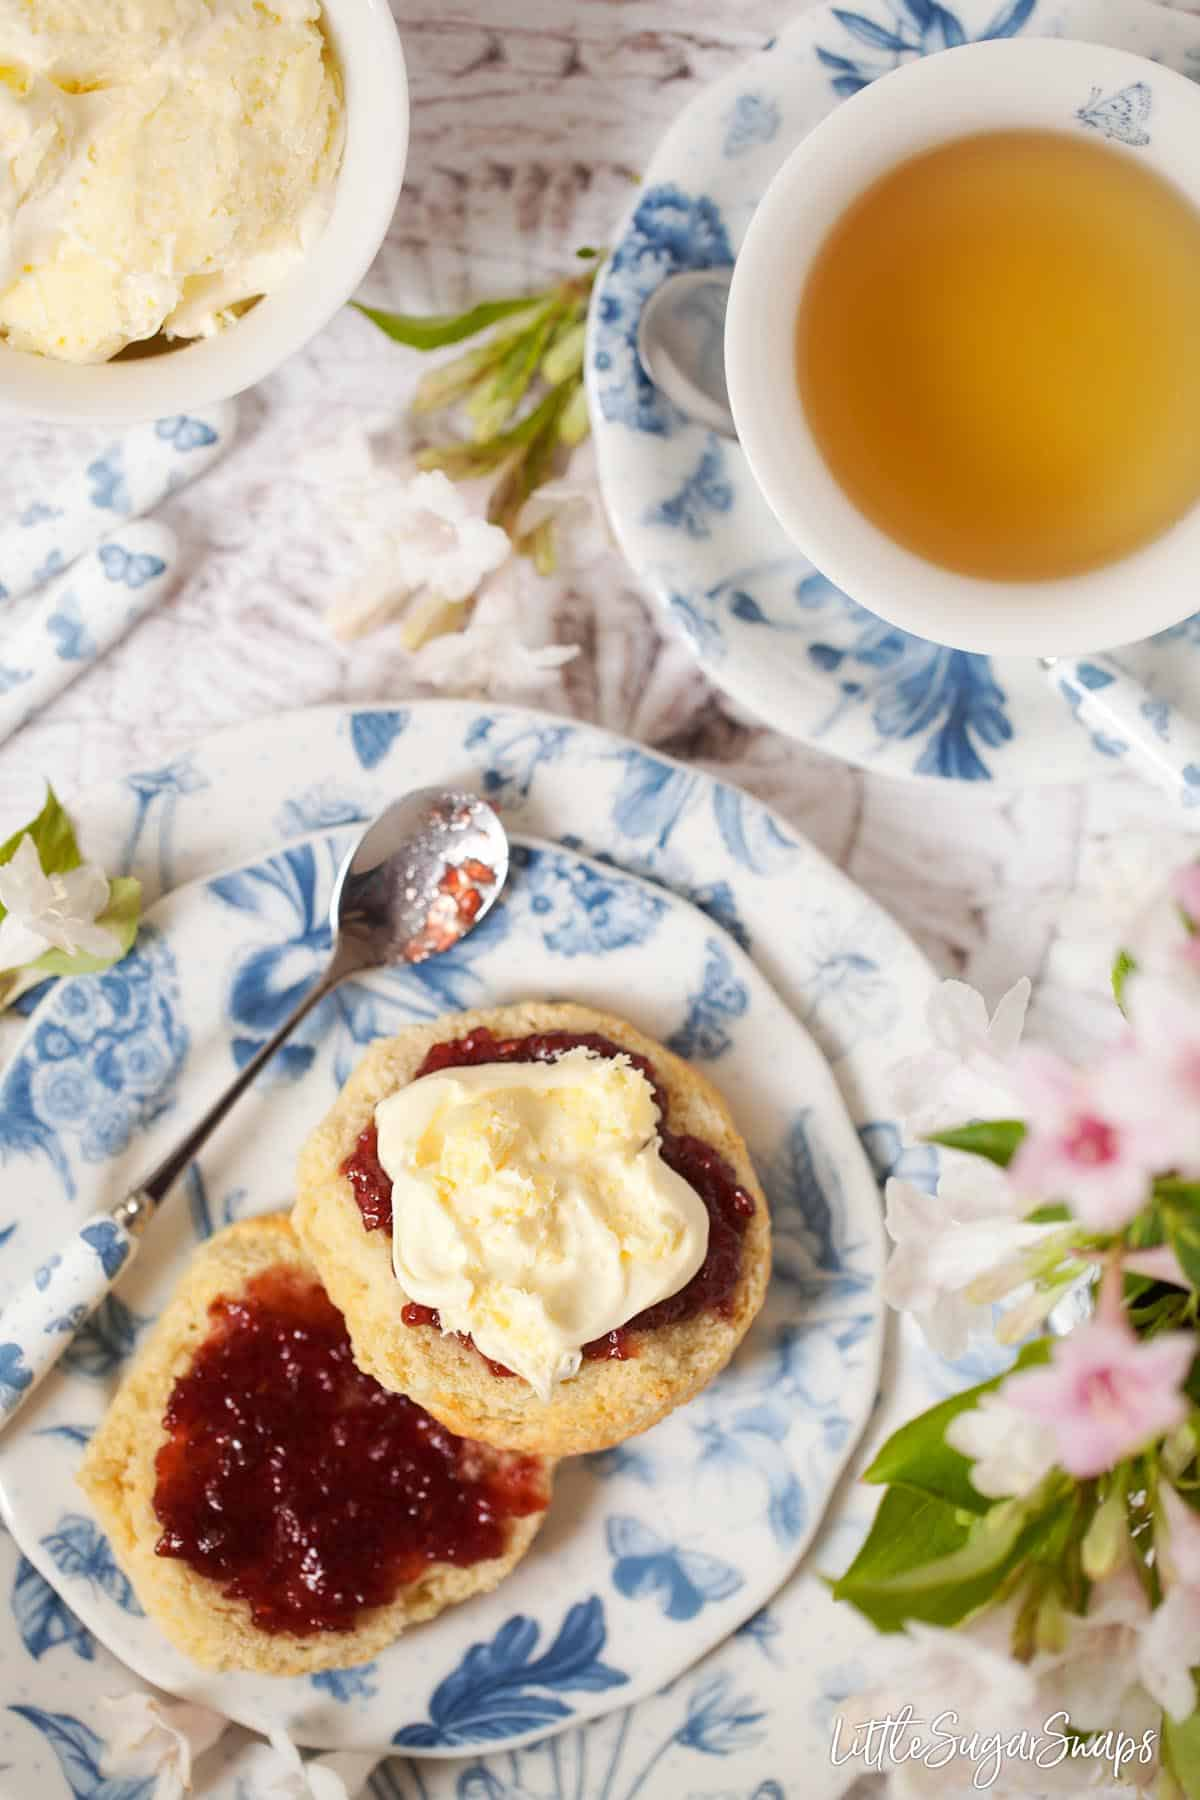 An overhead view of an English scone topped with jam and clotted cream, served with a cup of tea as part of classic afternoon tea